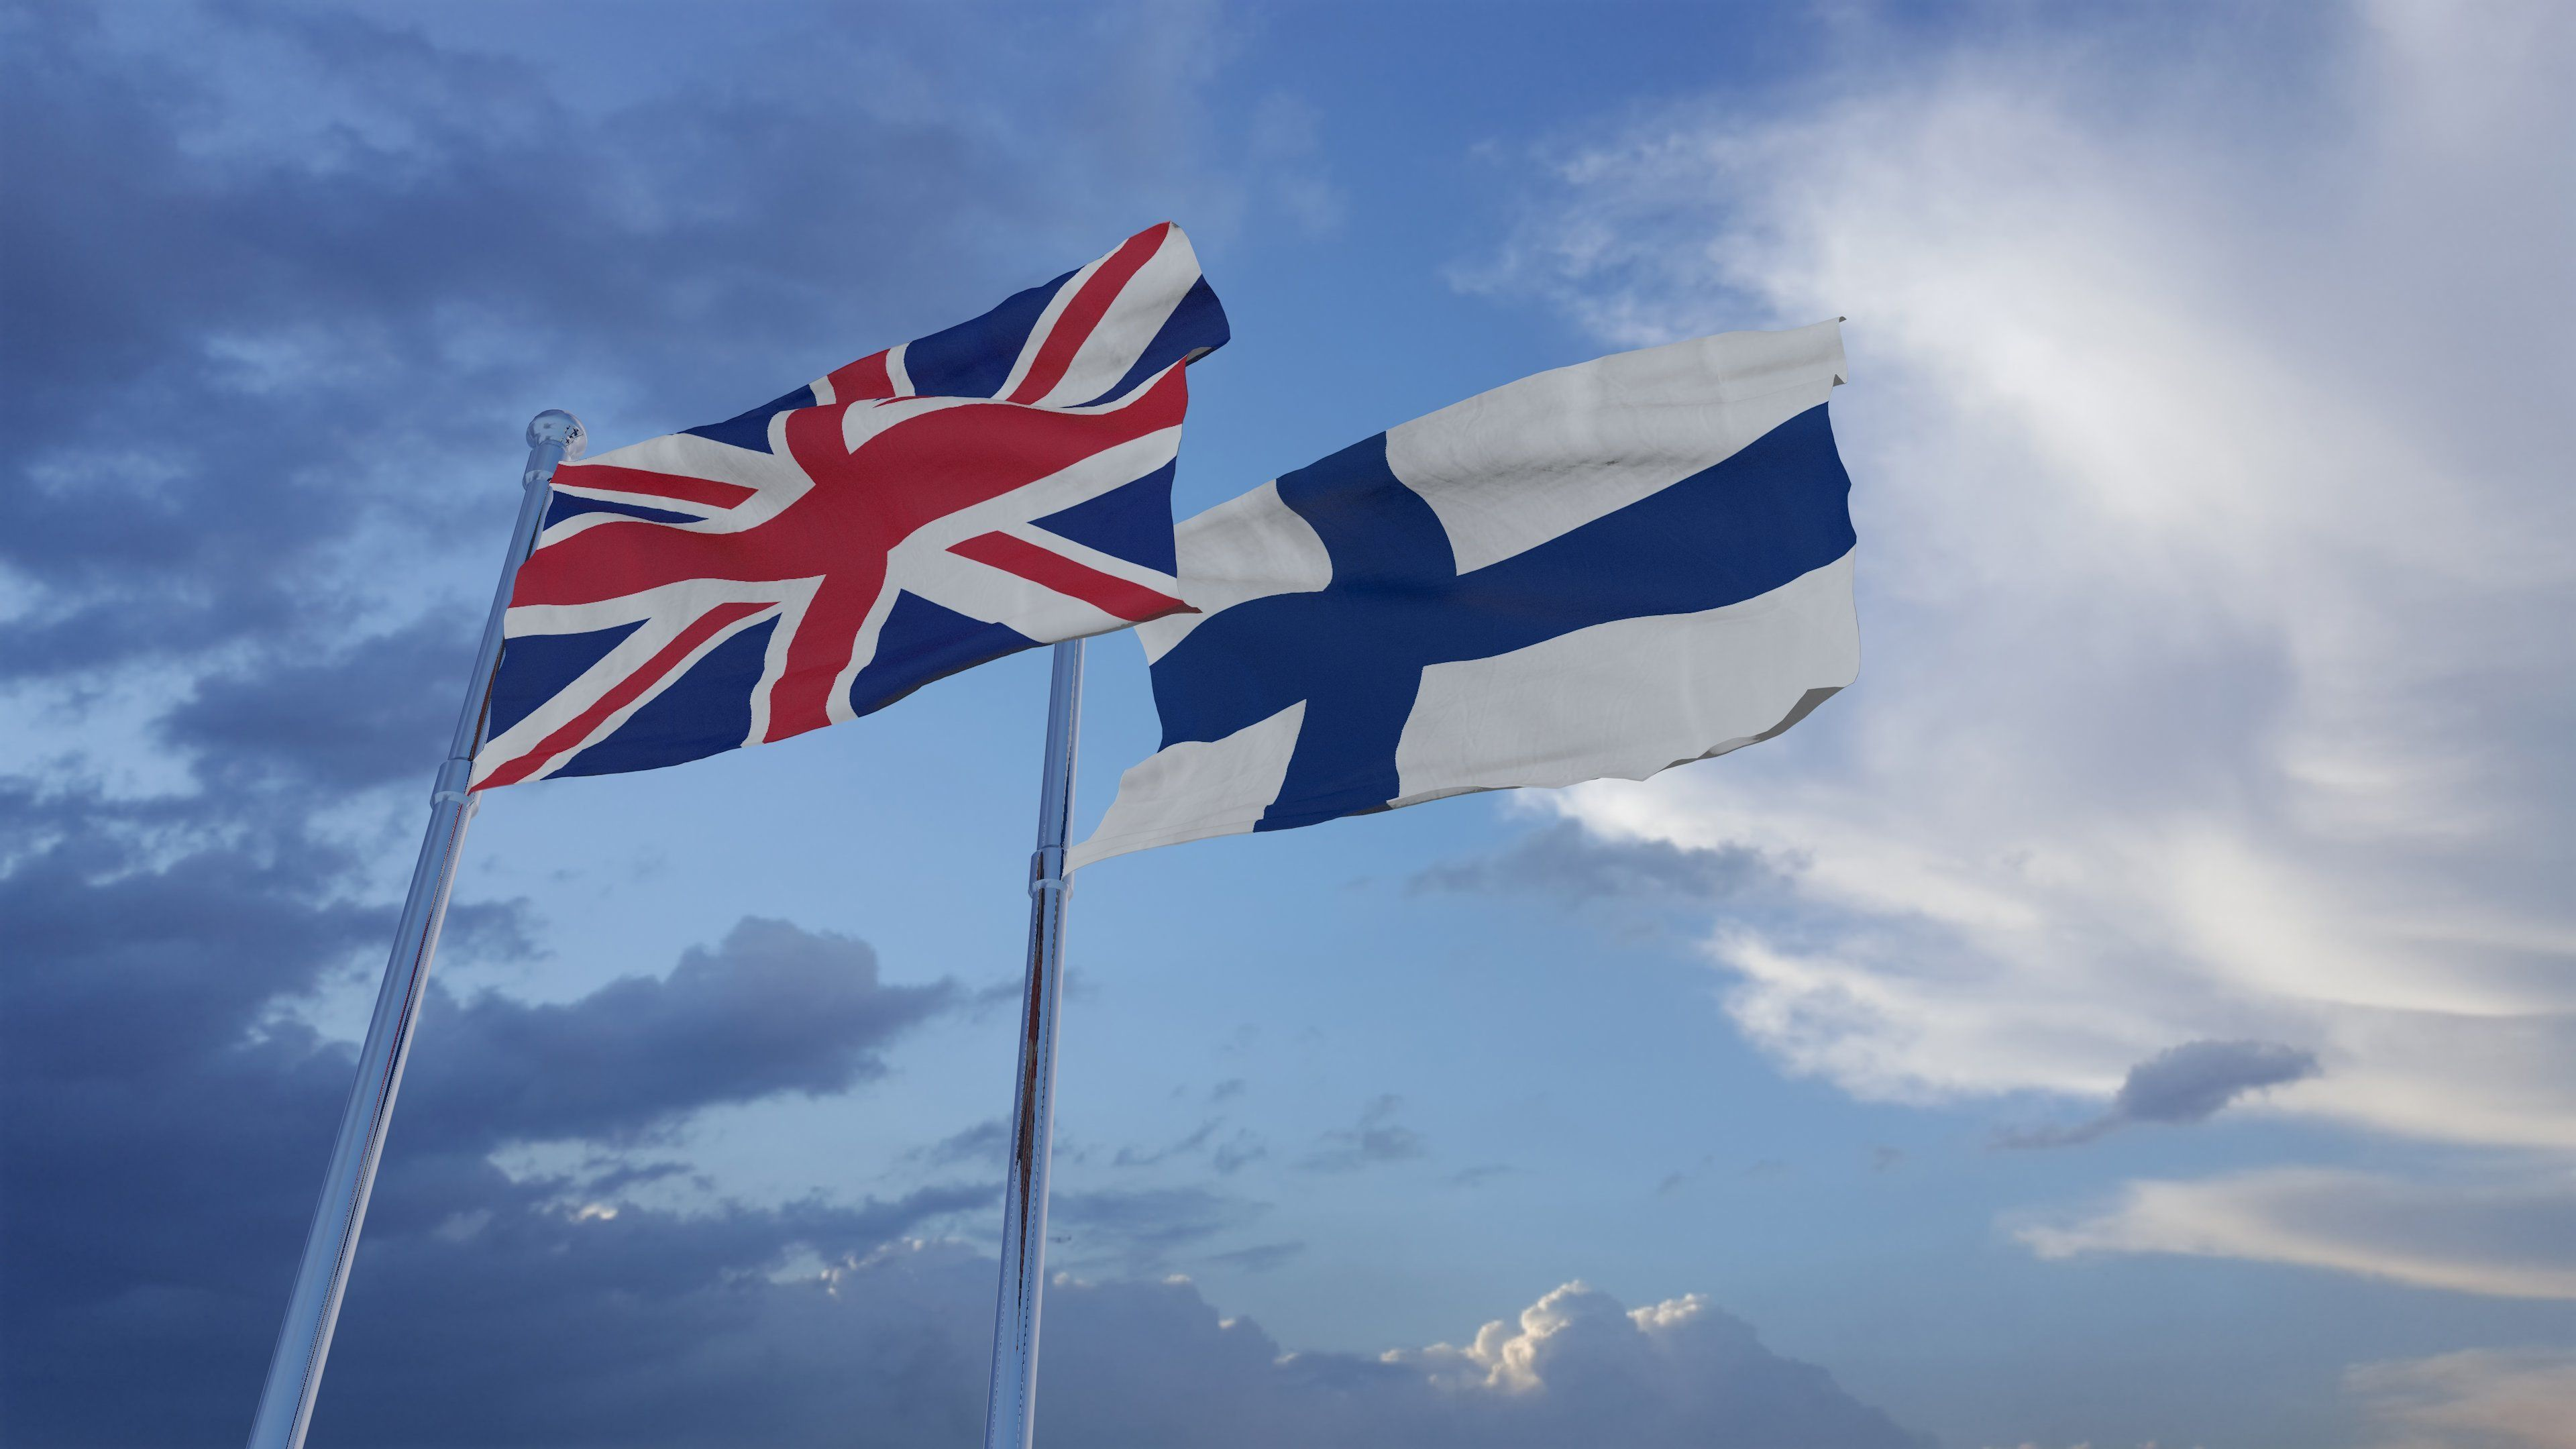 Finland's basic income trial boosted well-being, but not employment